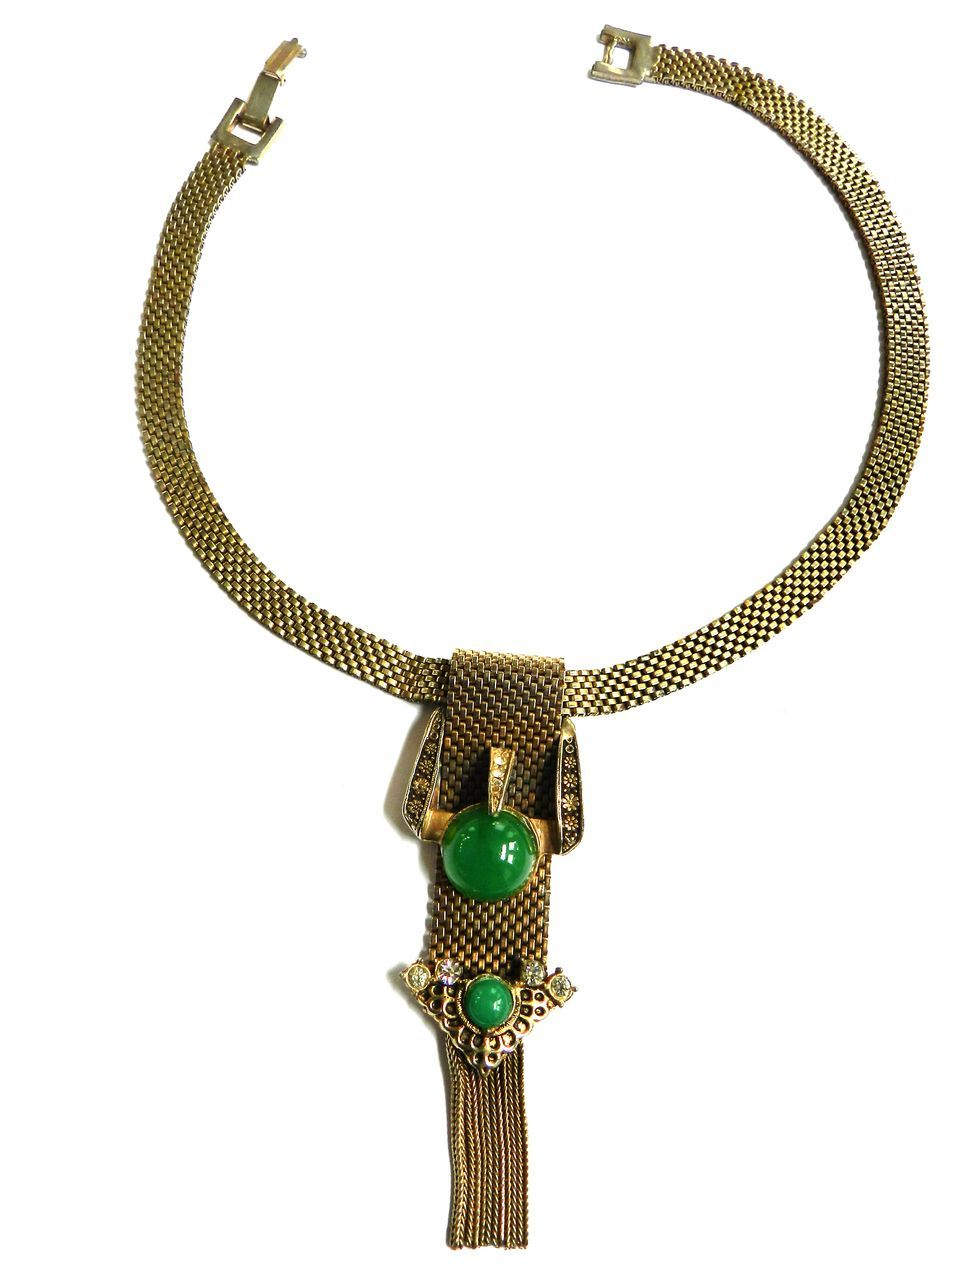 Vintage Victorian Style Slide Bracelet Drippy Necklace with Faux Jade Cabochons Drippy